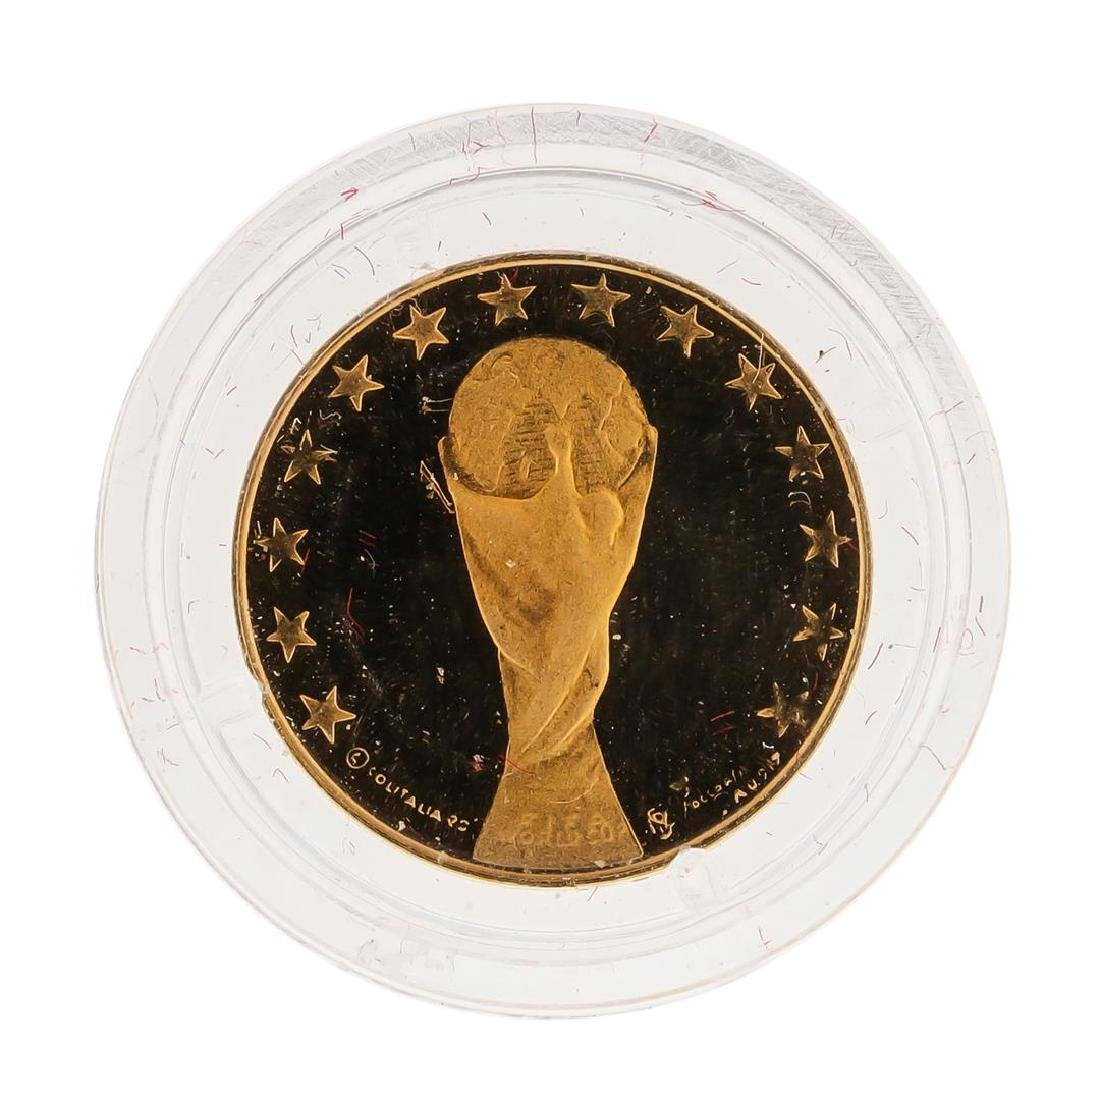 1990 Italy Football Institute Gold Coin Brand of the